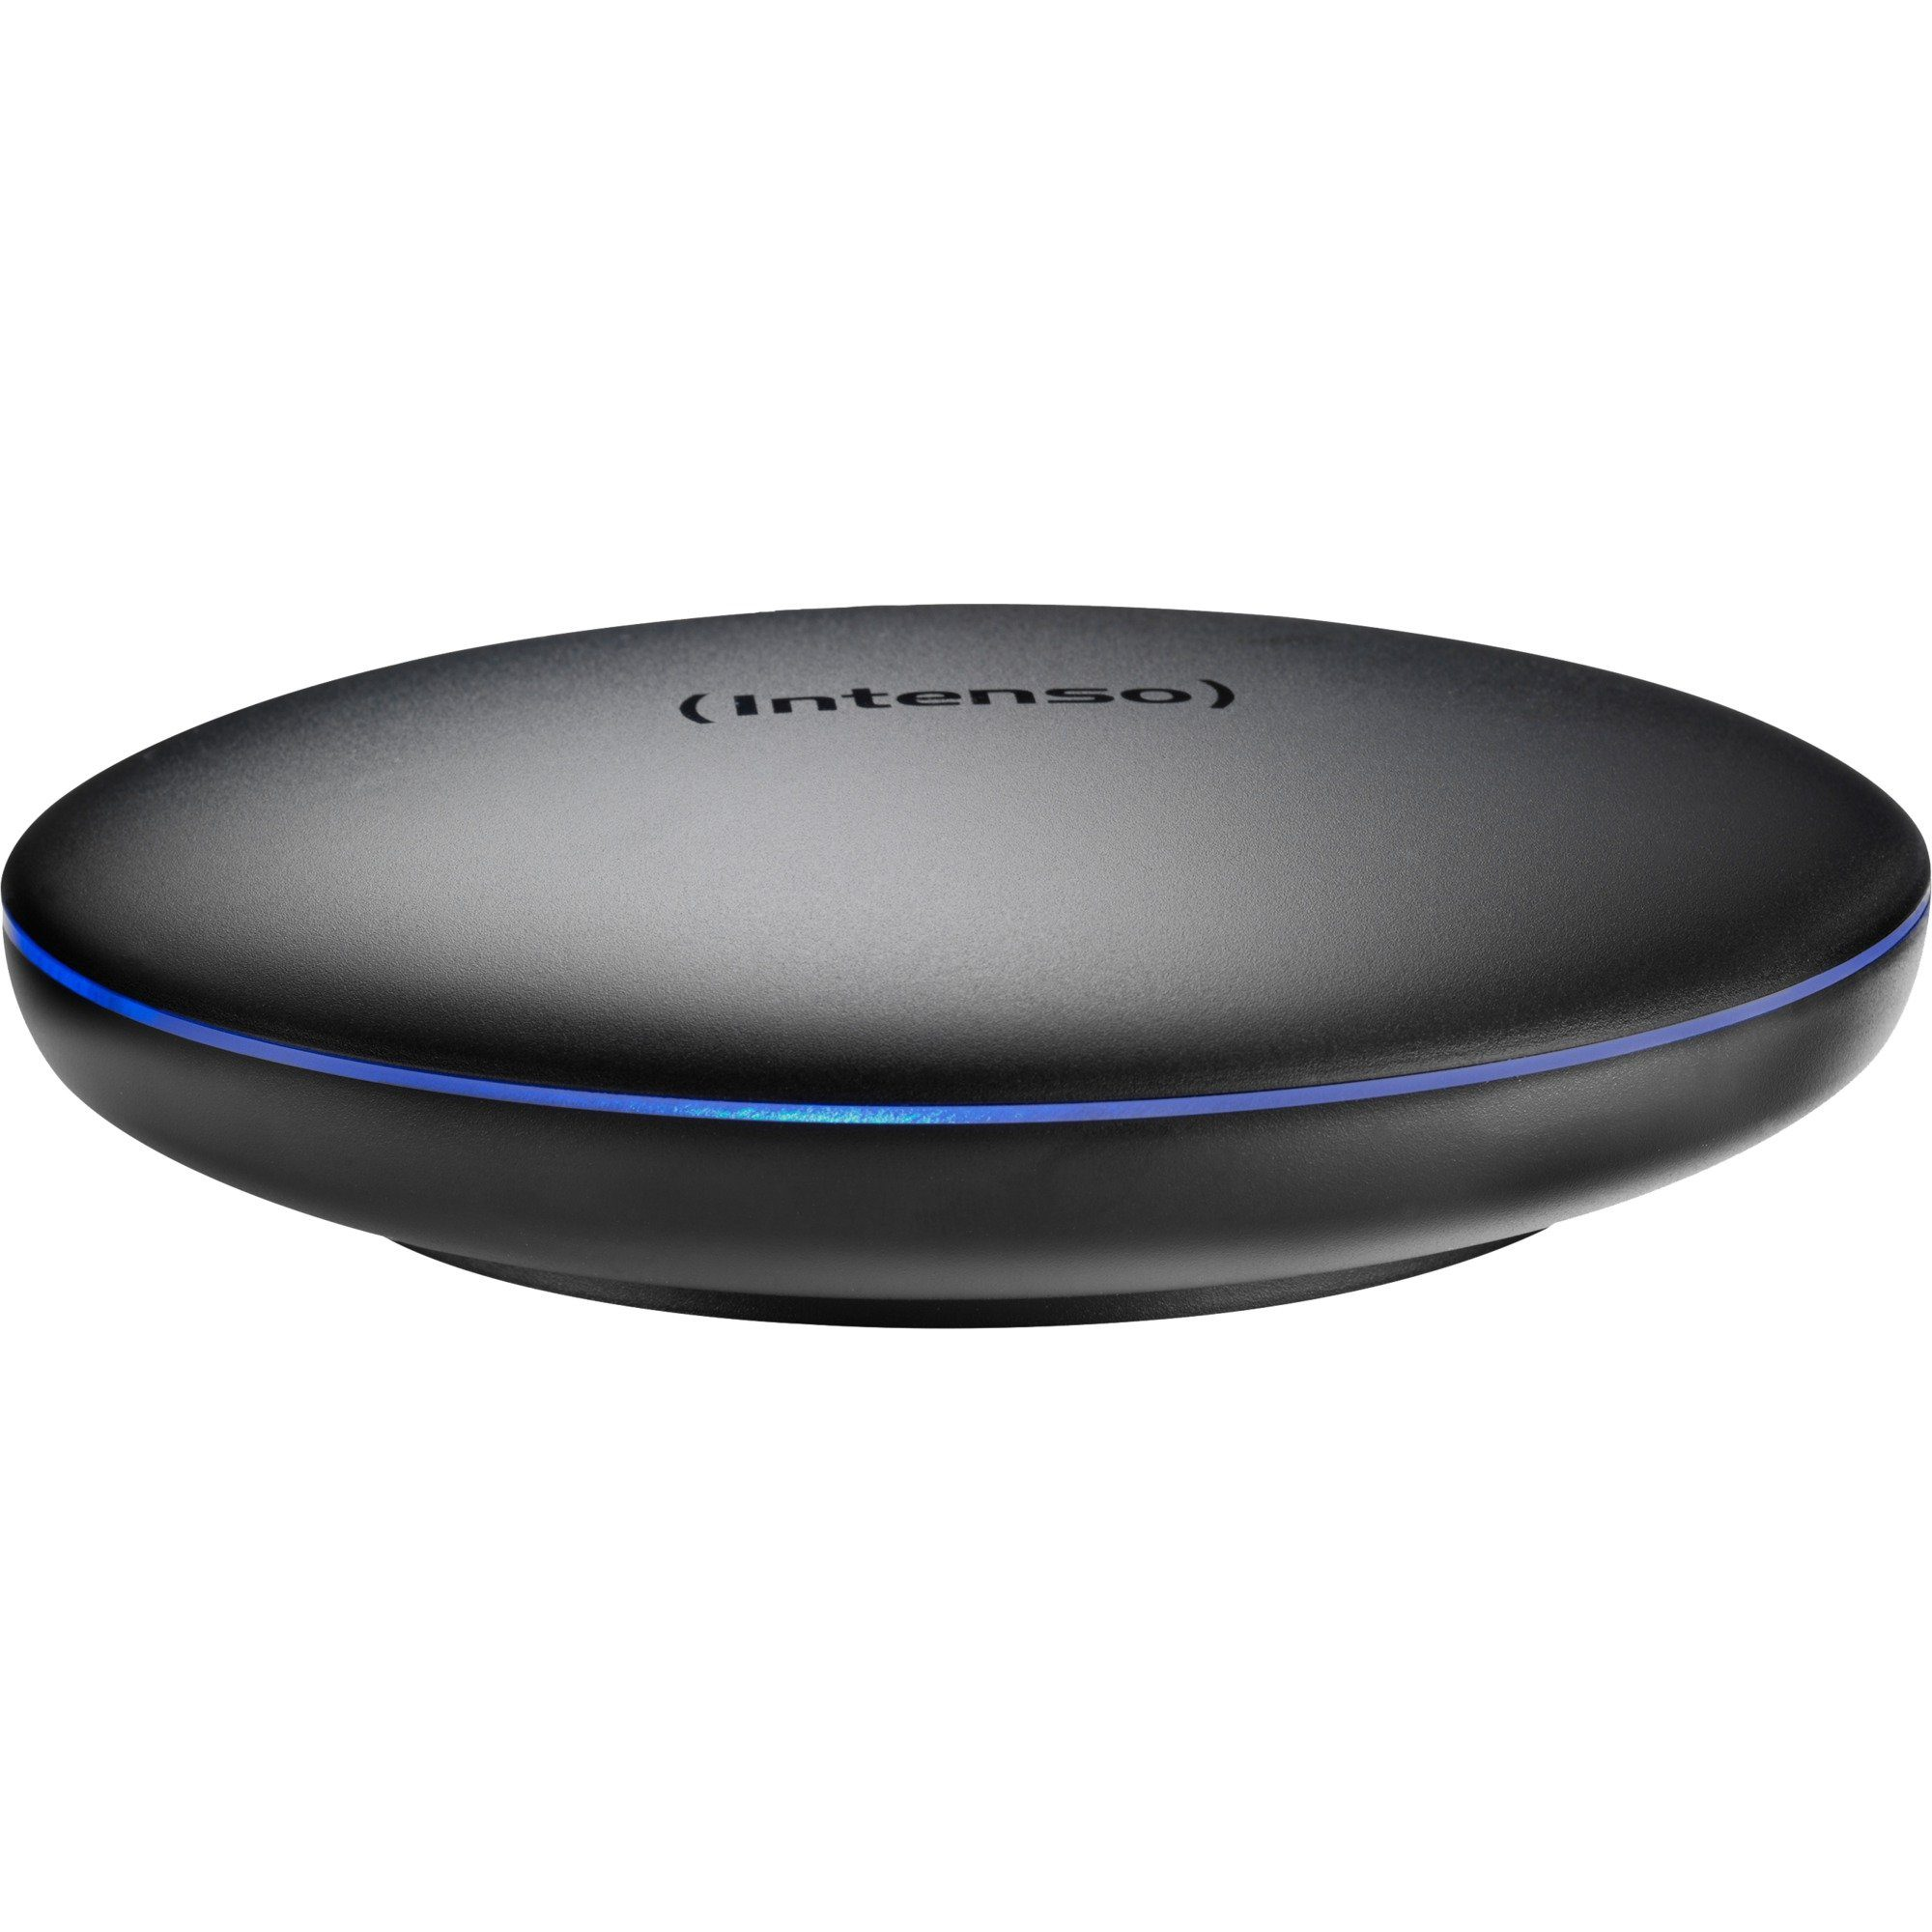 Intenso Festplatte Memory Space LightEdition 1 TB